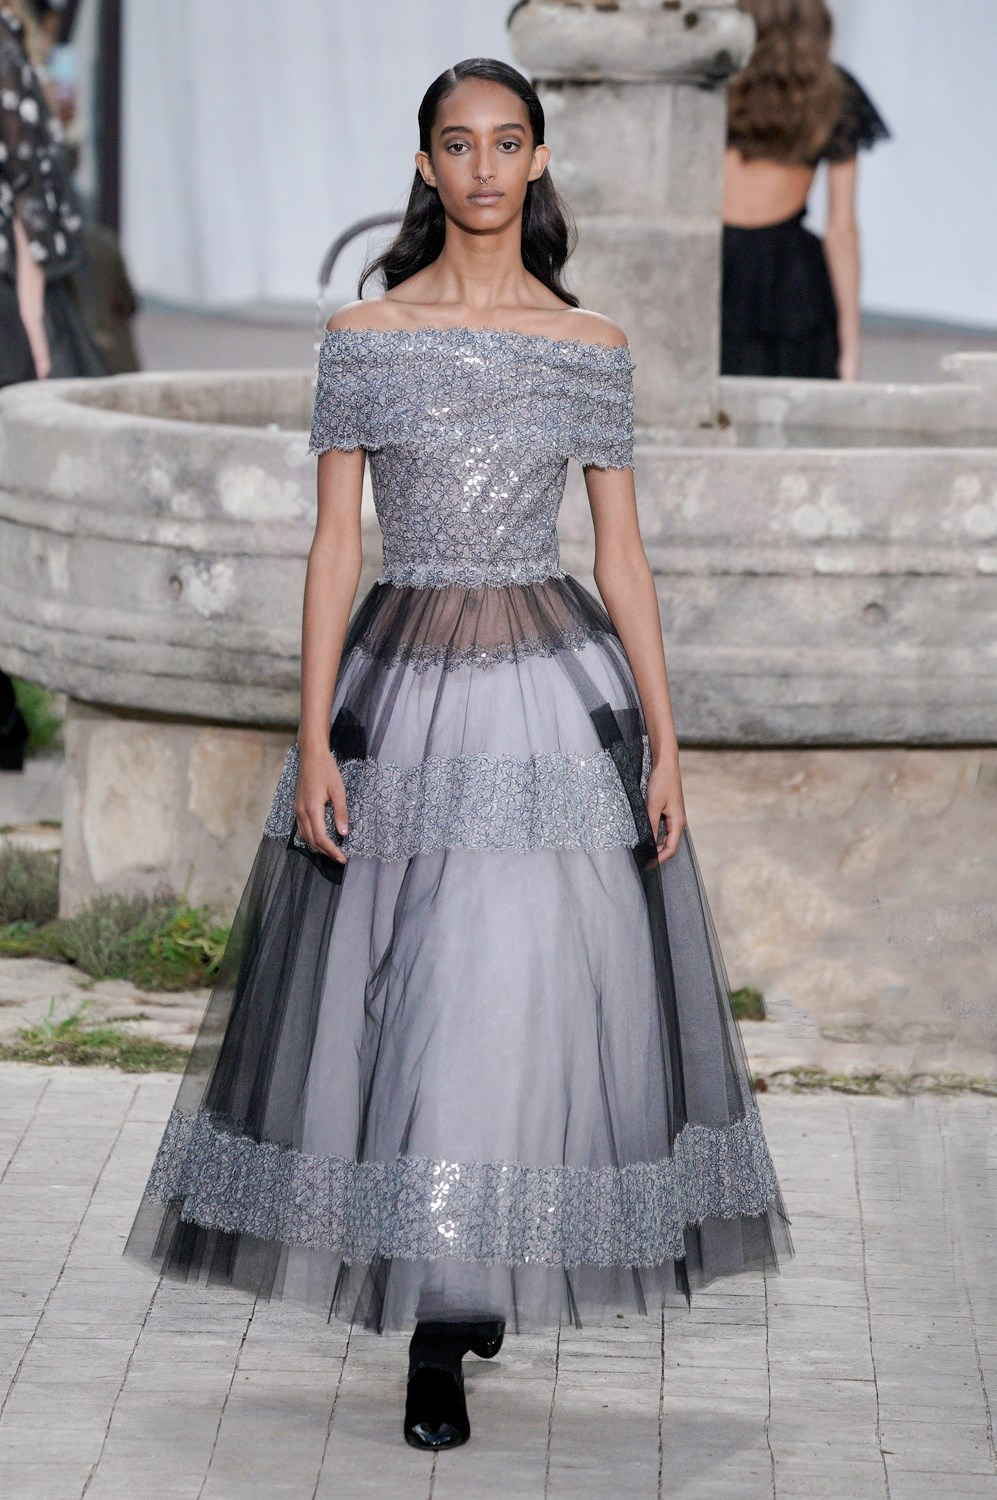 Chanel Spring 2020 Couture Fashion Show Photos